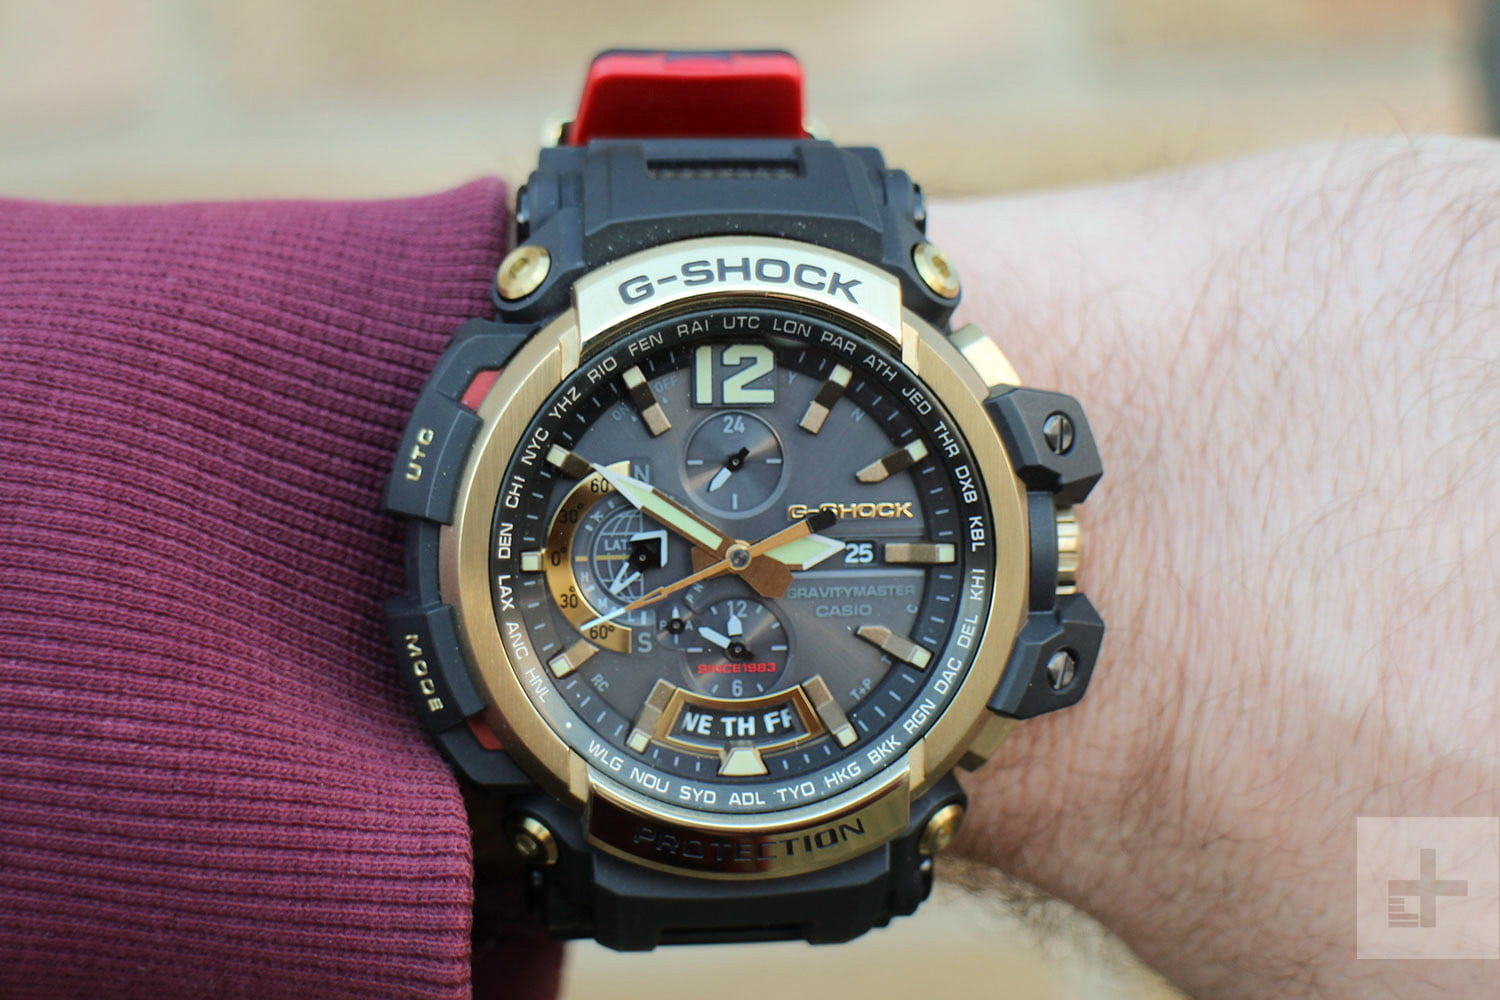 Casio G Shock GPW-2000 review arm face